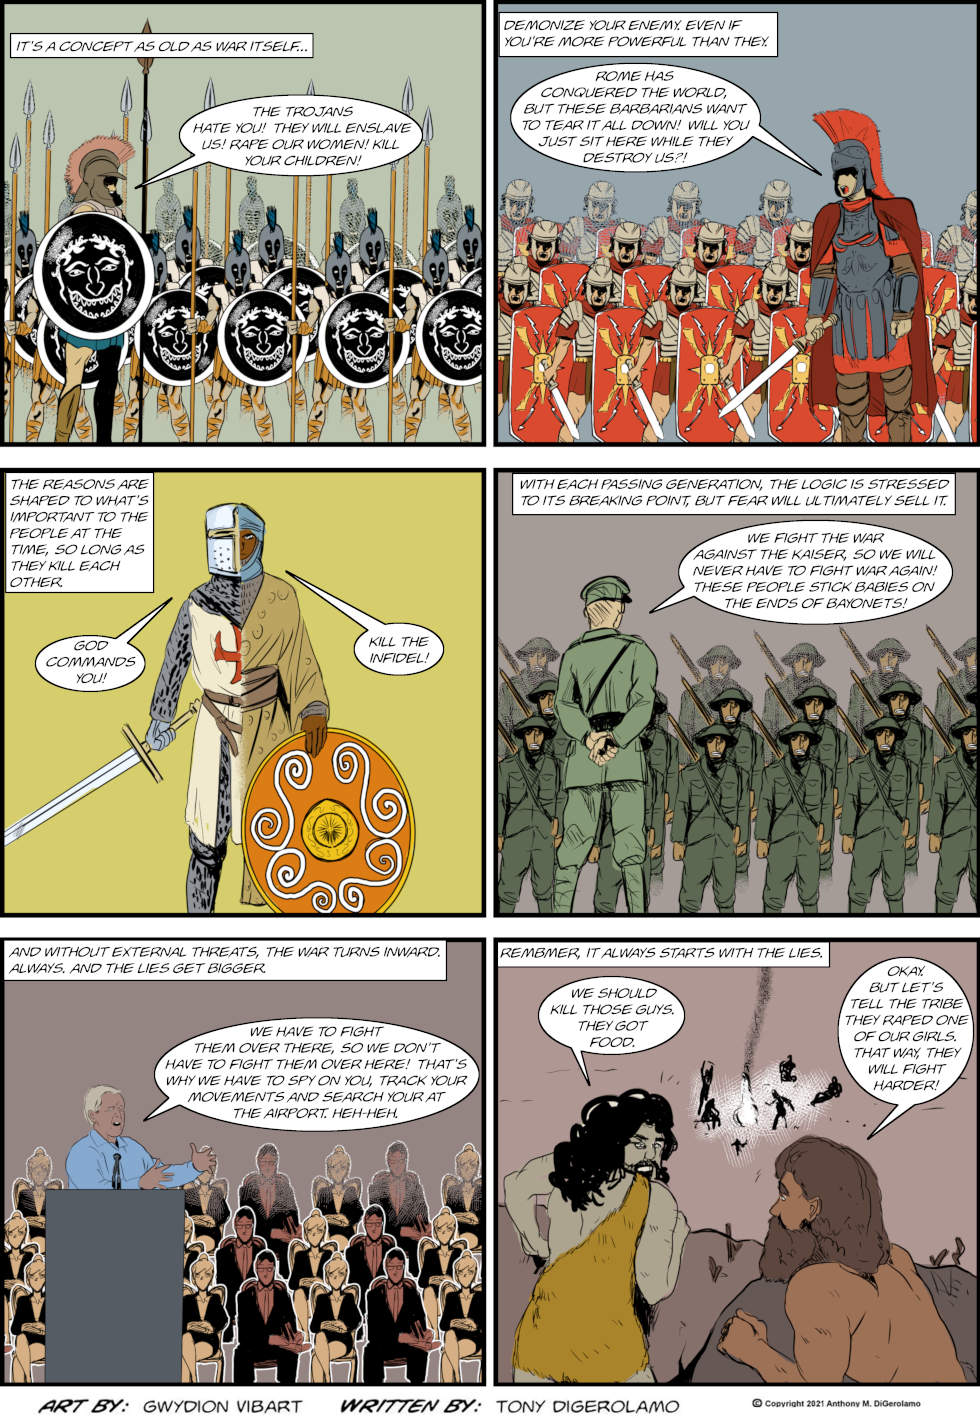 The Antiwar Comic: The Thing to Look For